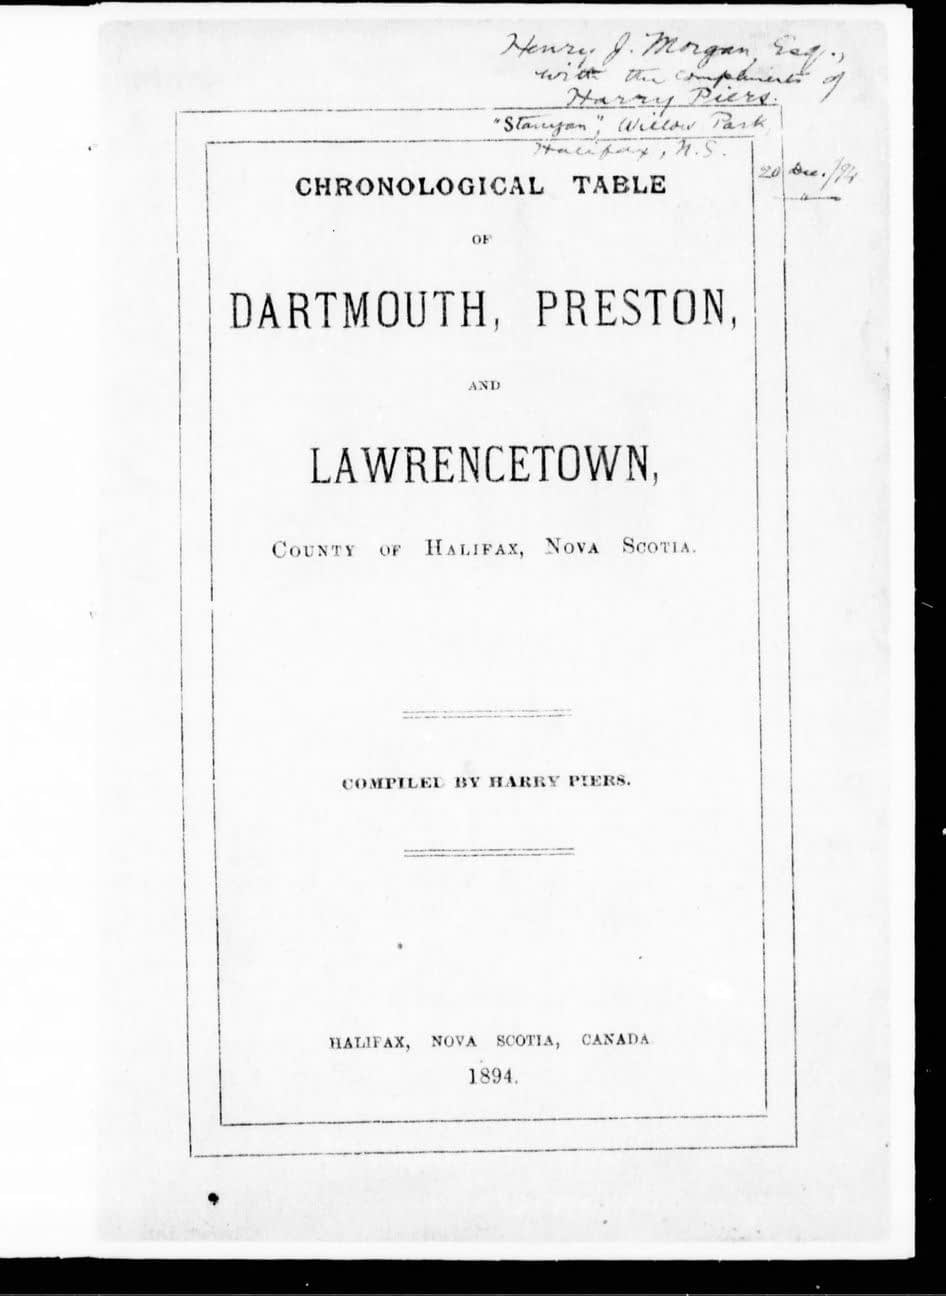 Chronological Table of Dartmouth, Preston, and Lawrencetown